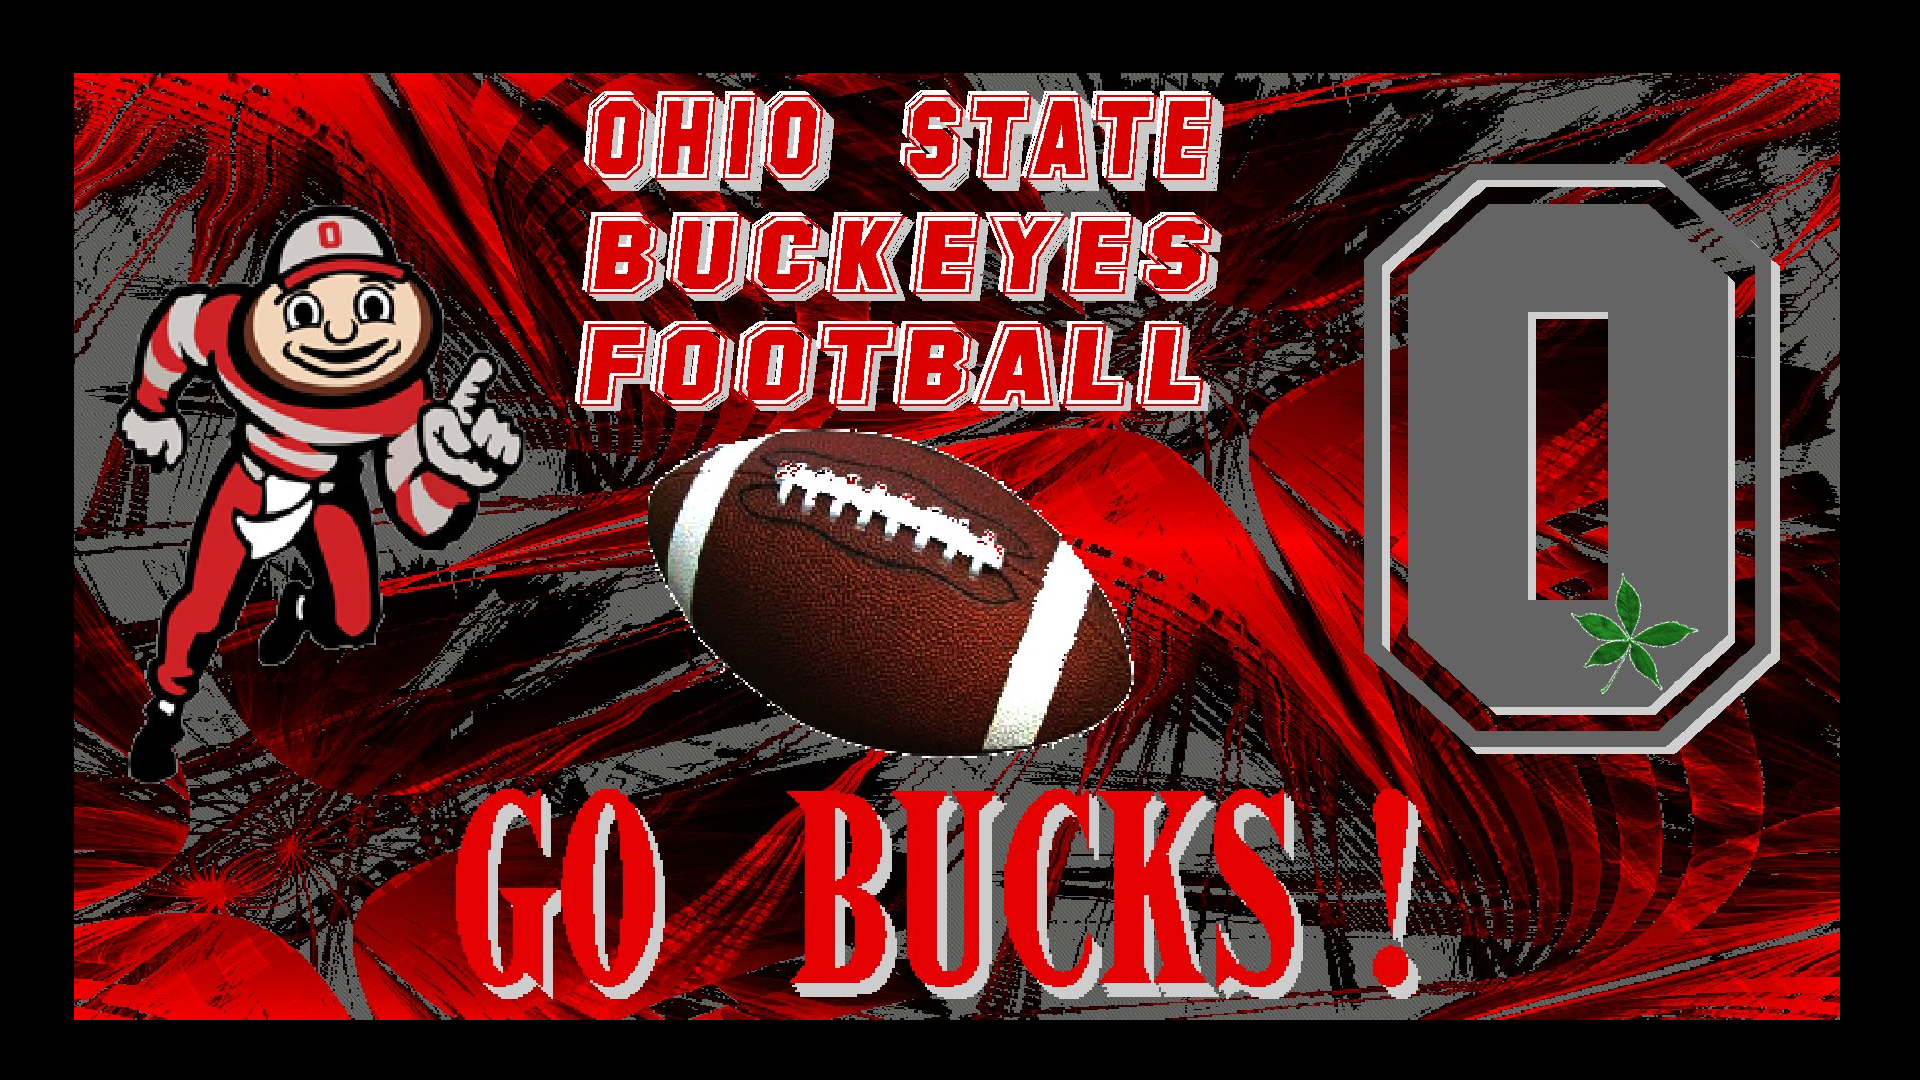 OHIO STATE BUCKEYES FOOTBALL GO BUCKS ohio state football 29030008 1920x1080